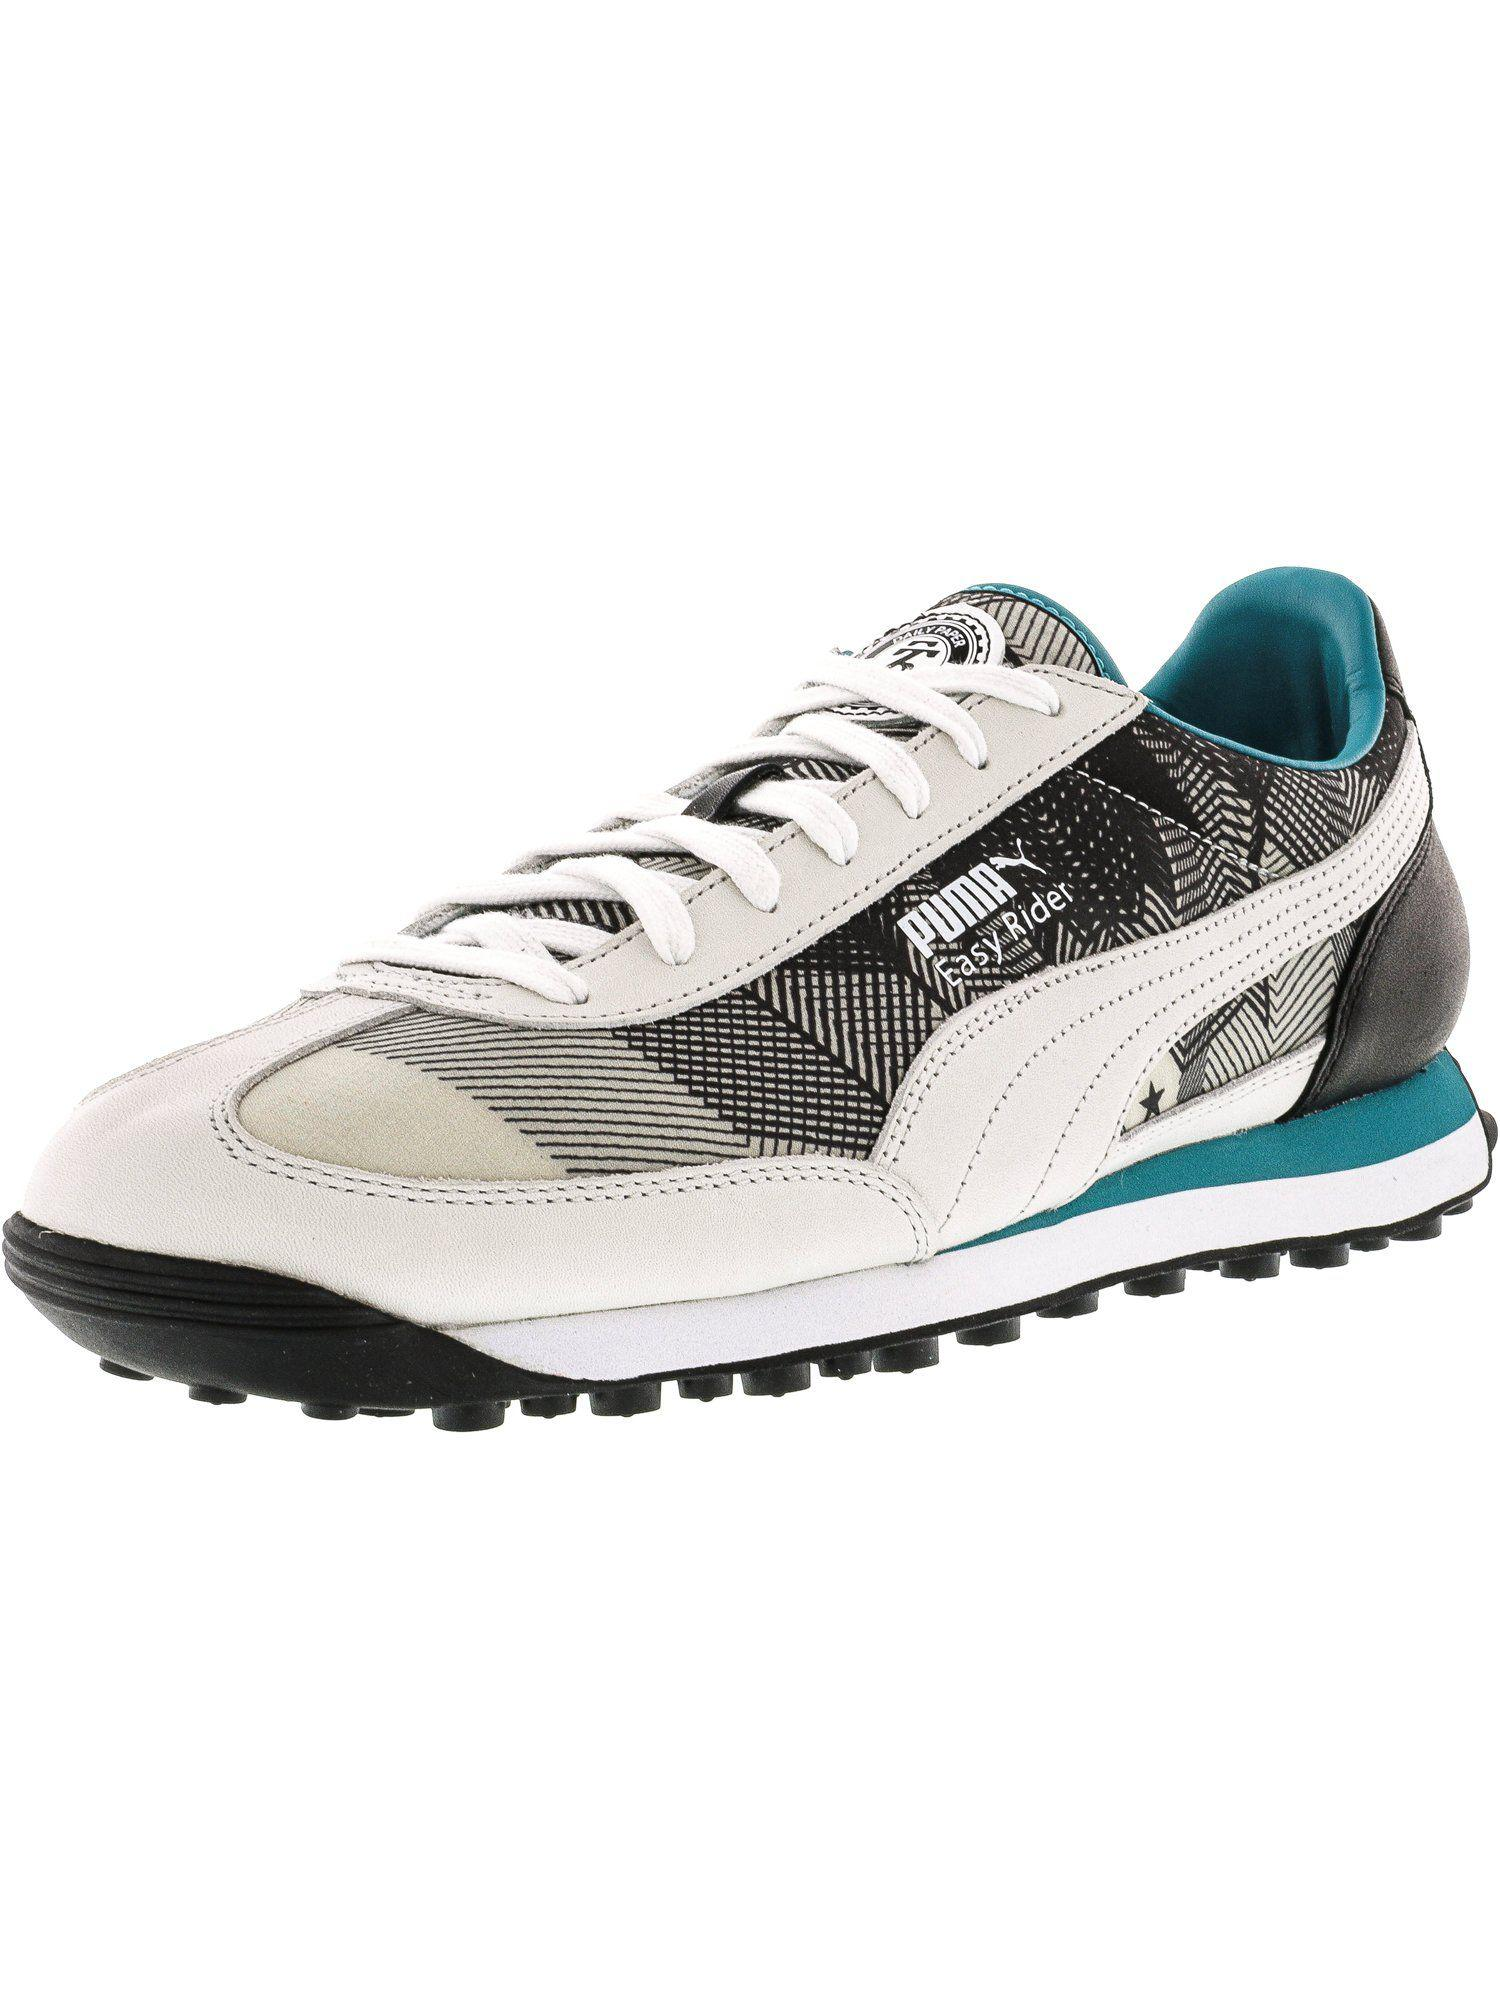 a87d7afd092dc3 Lyst - Puma Men s Easy Rider Graphic Dp Ankle-high Running Shoe in ...